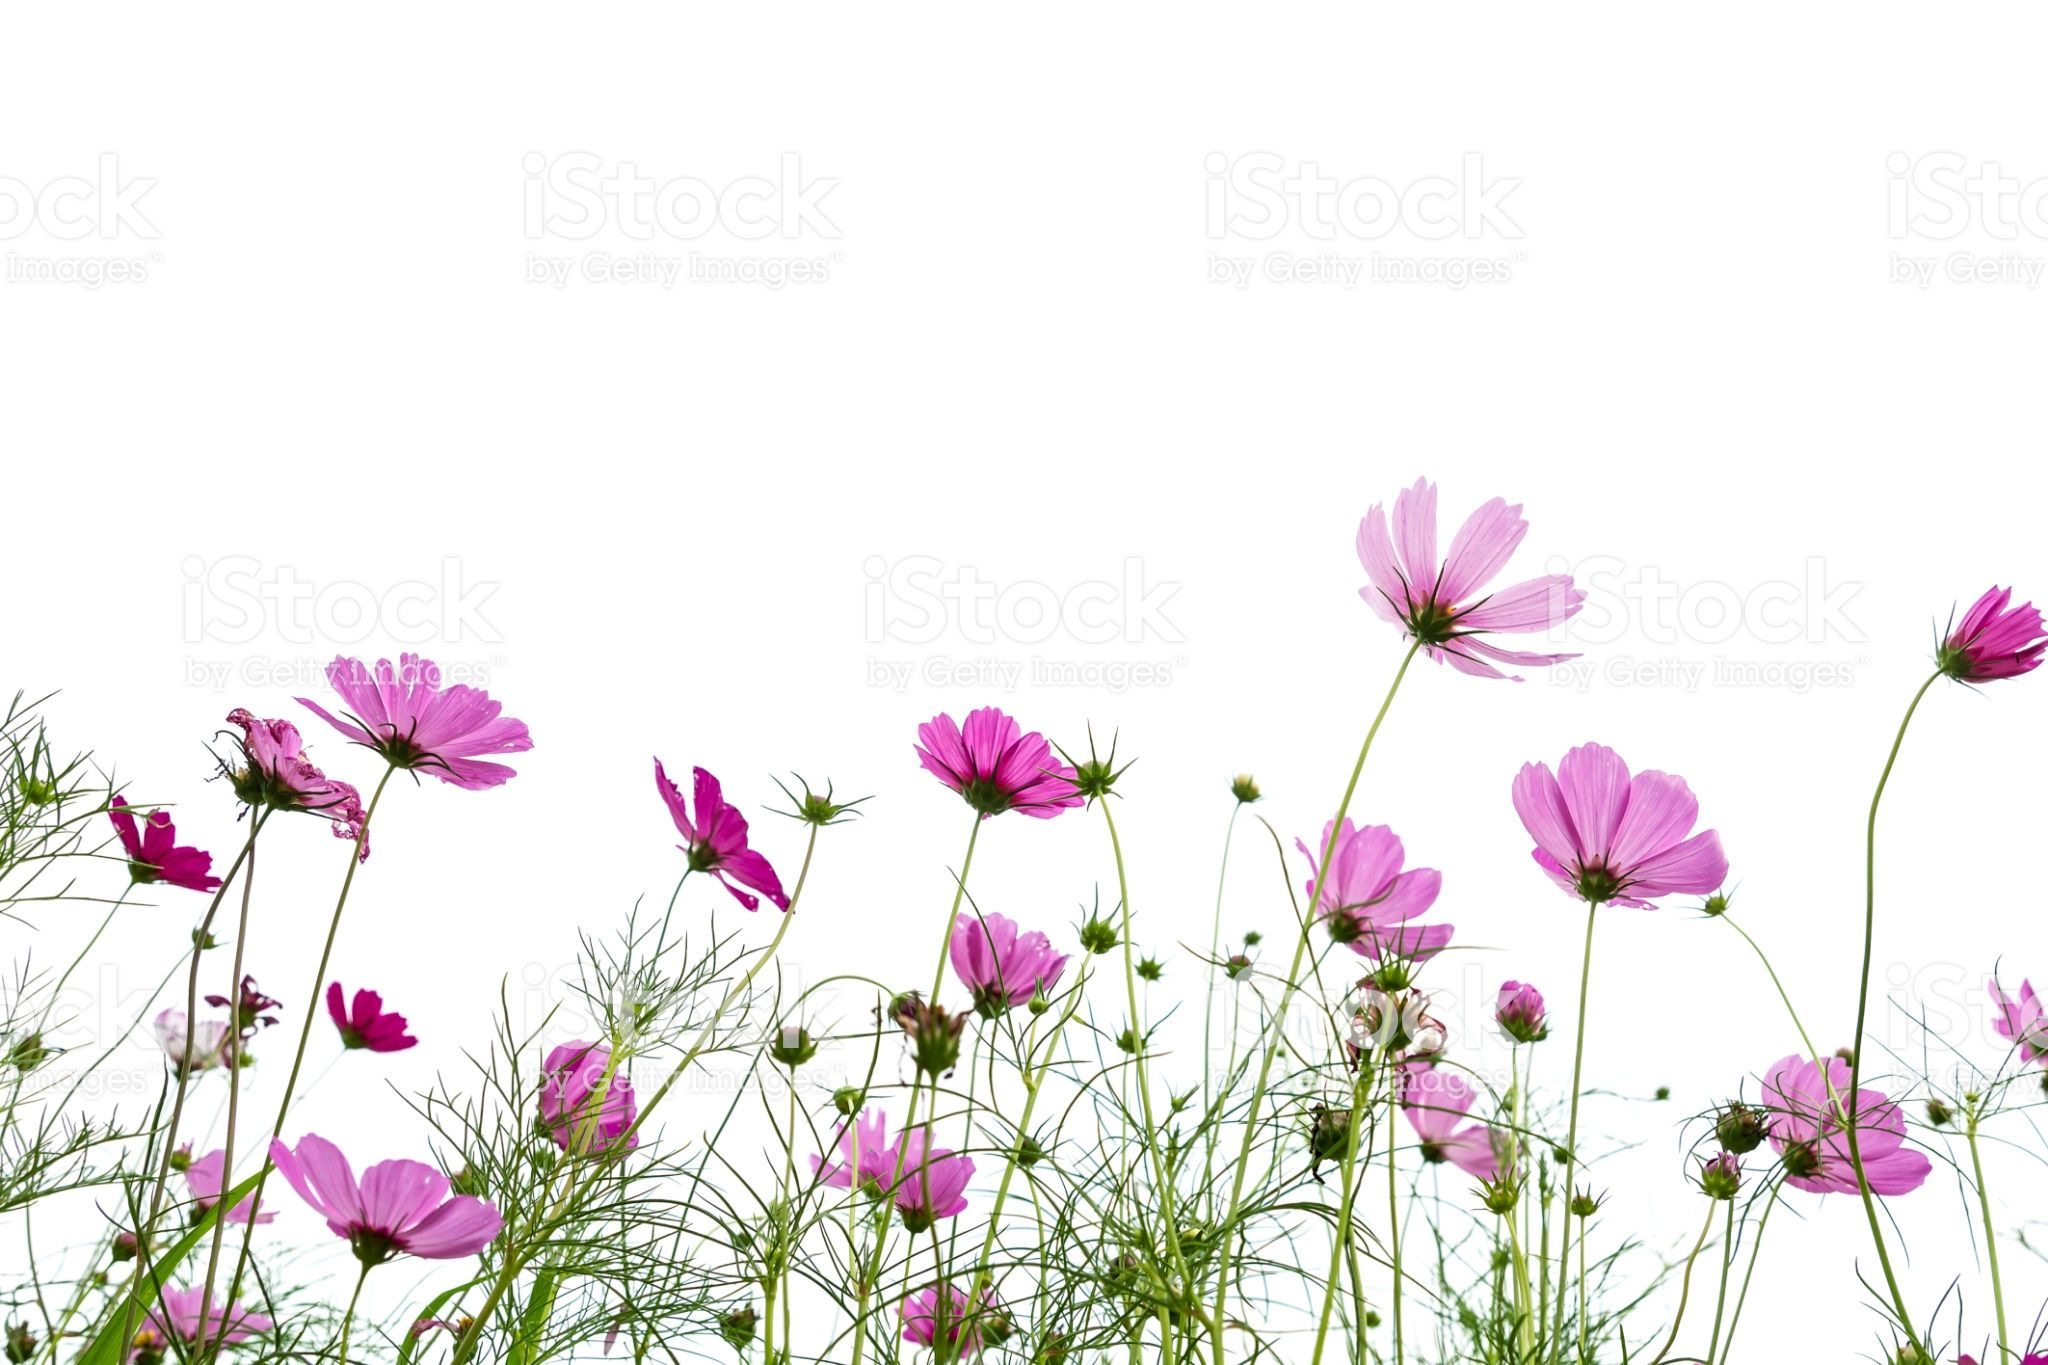 Cosmos Flower Blooming Against White Background Royalty Free Stock Photo